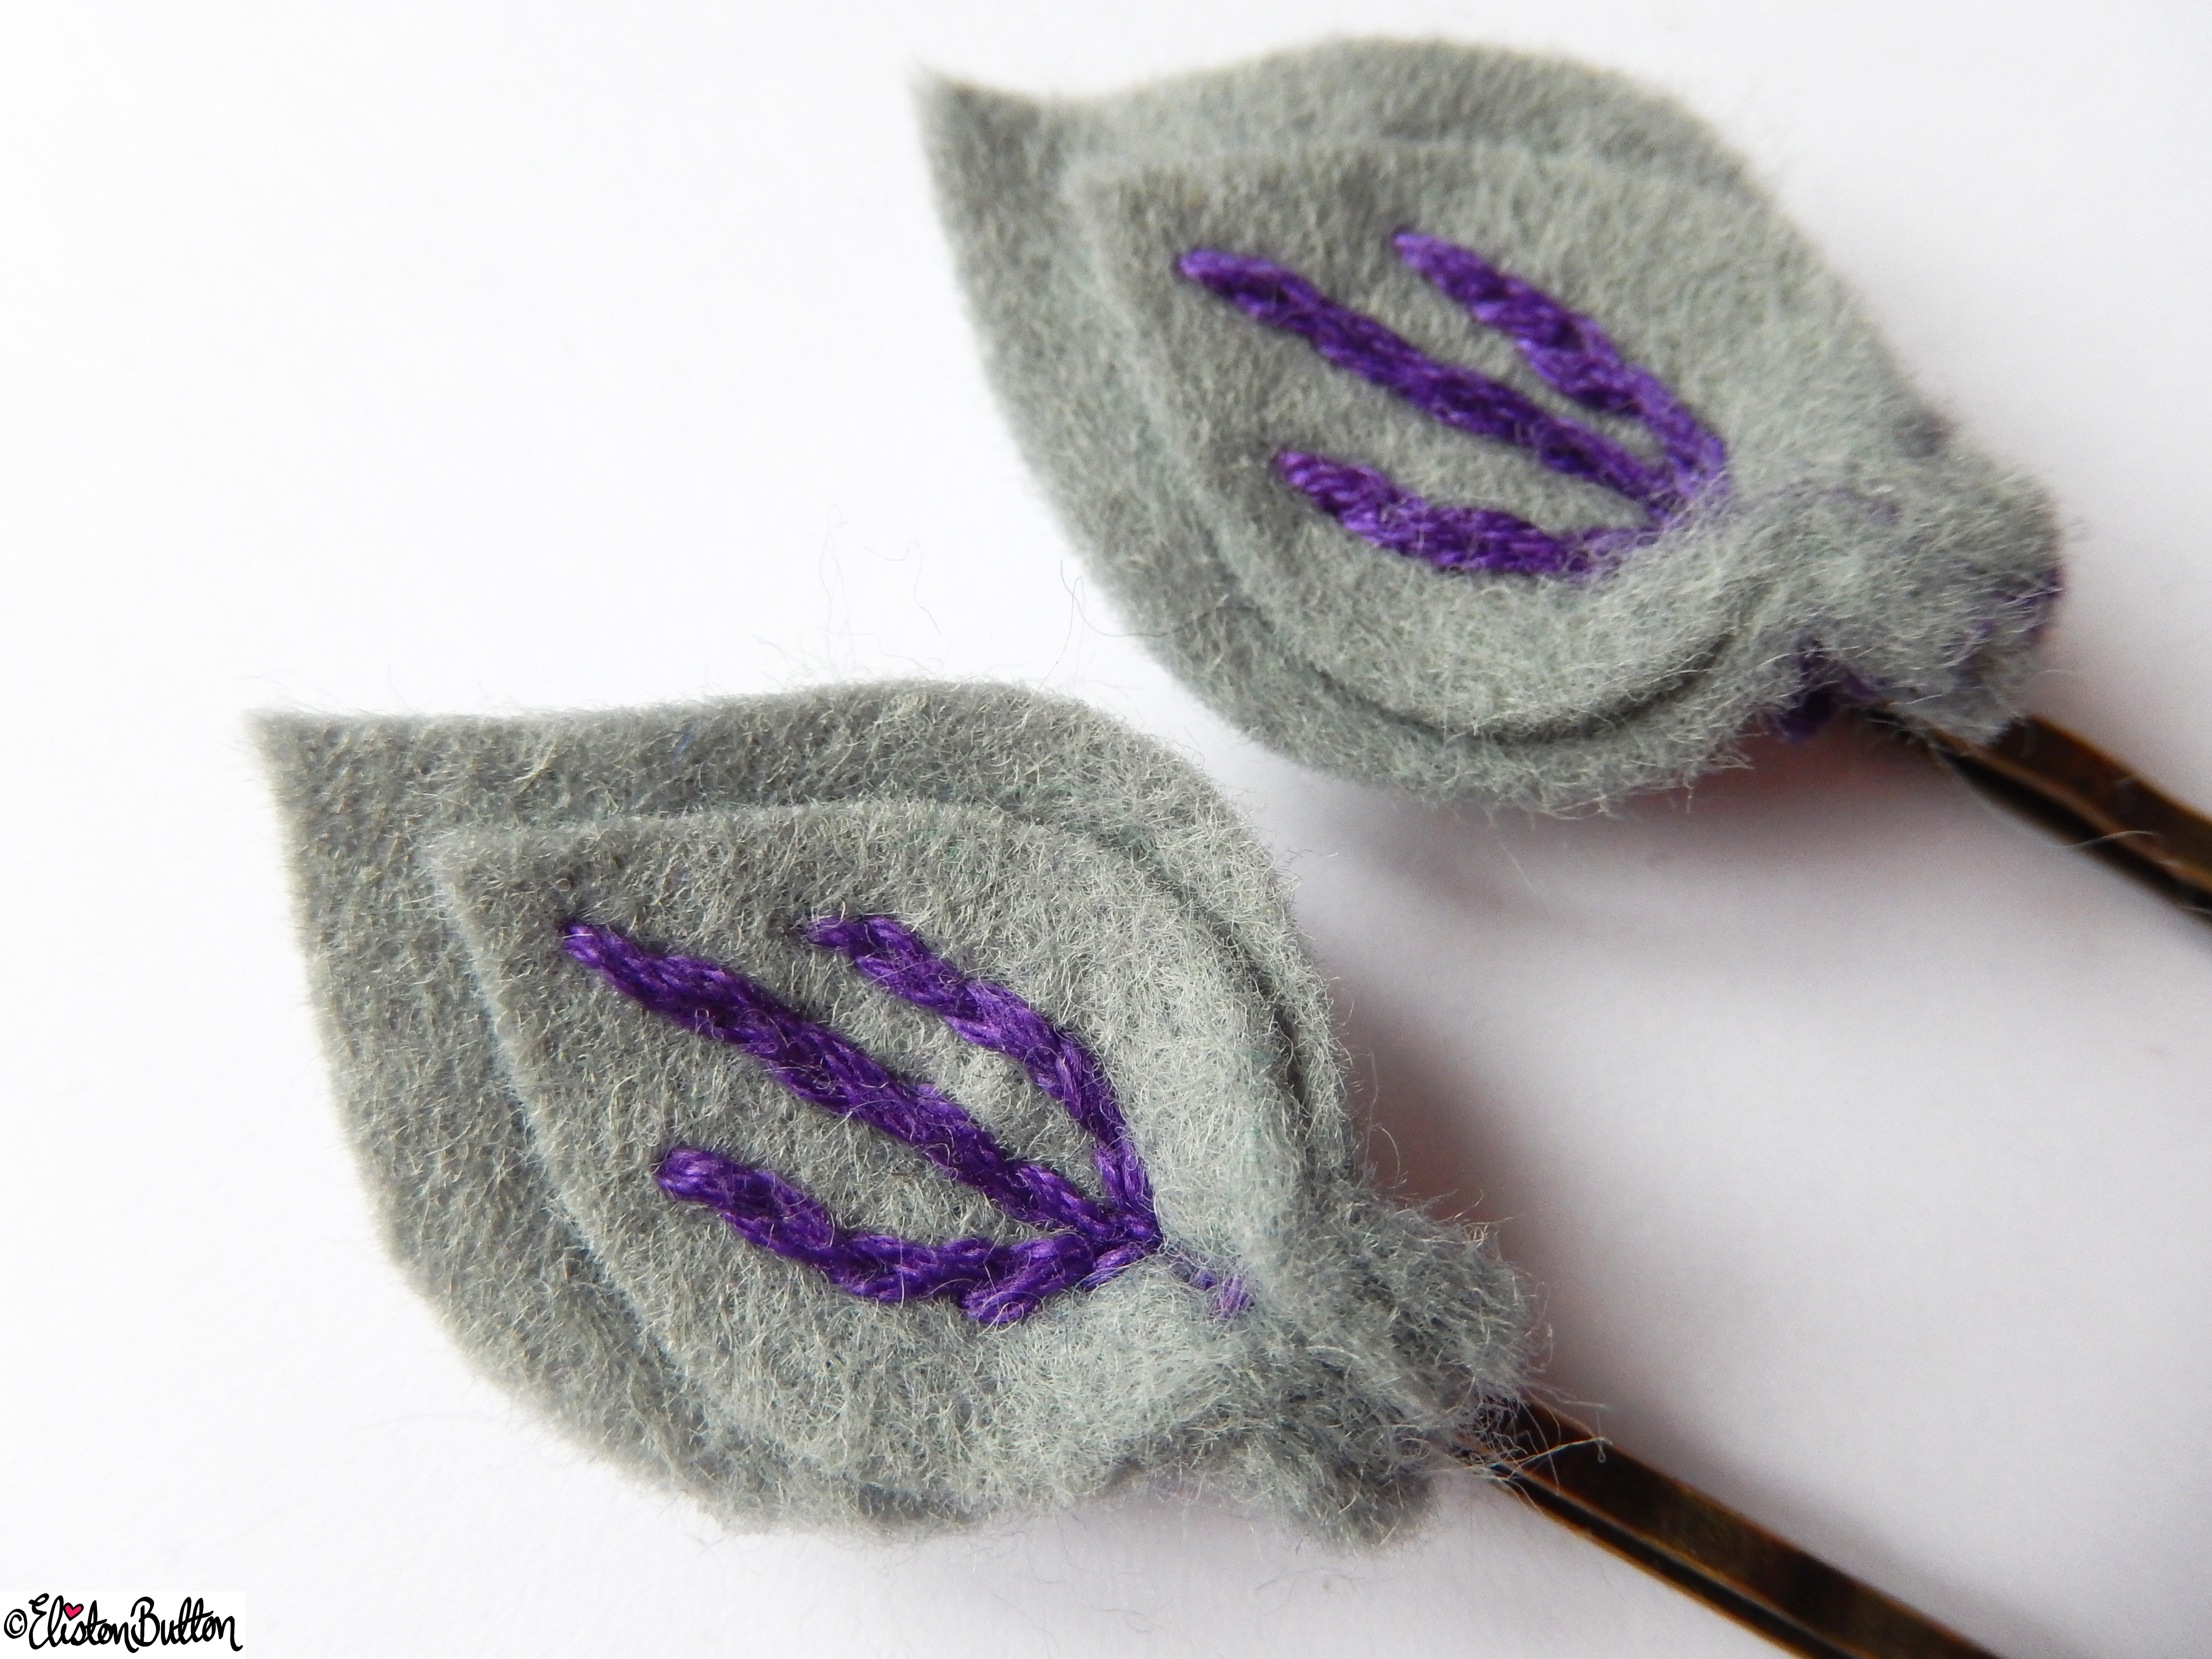 Slate Grey and Purple Berry Embroidered Felt Hair Grips Close Up - Create 28 - No.4 - Embroidered Felt Petal Hair Grips at www.elistonbutton.com - Eliston Button - That Crafty Kid – Art, Design, Craft & Adventure.